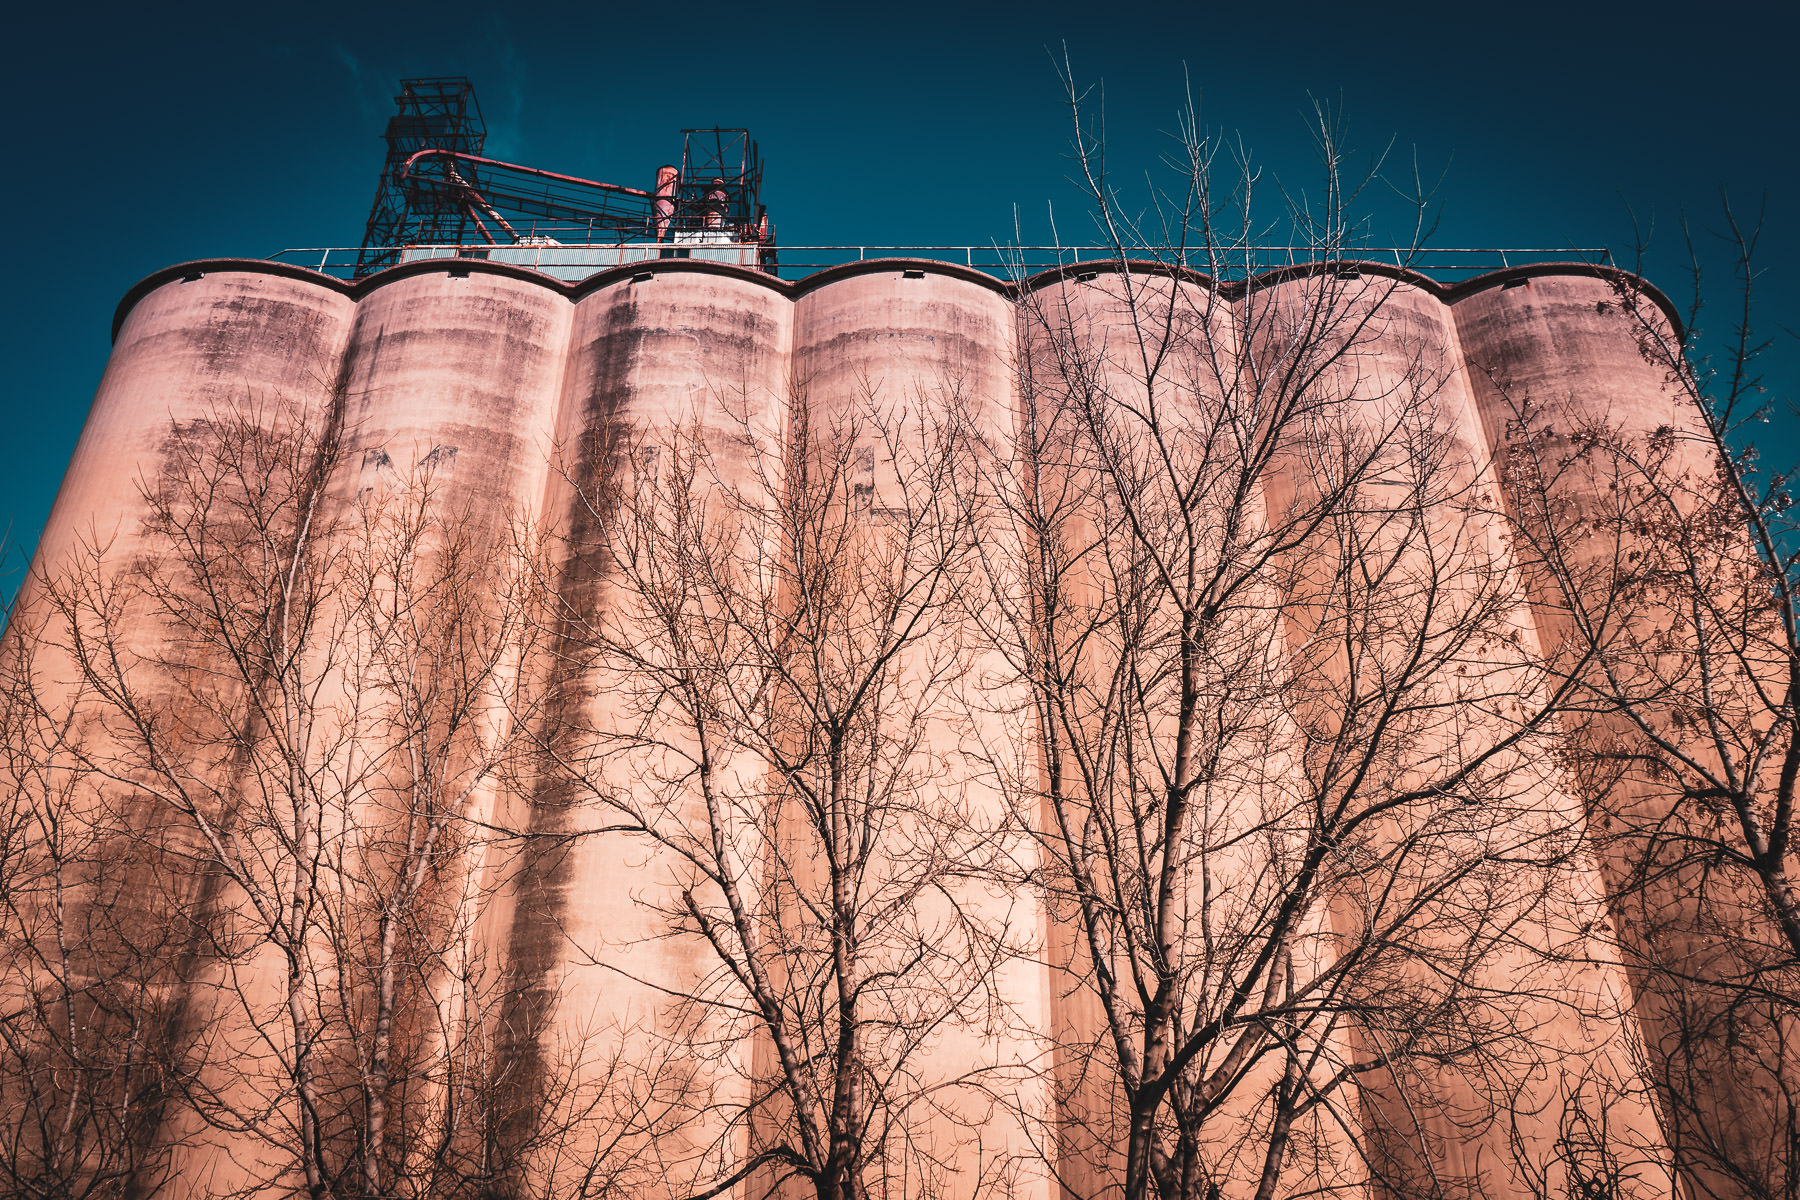 Silos at a grain elevator in Grapevine, Texas.